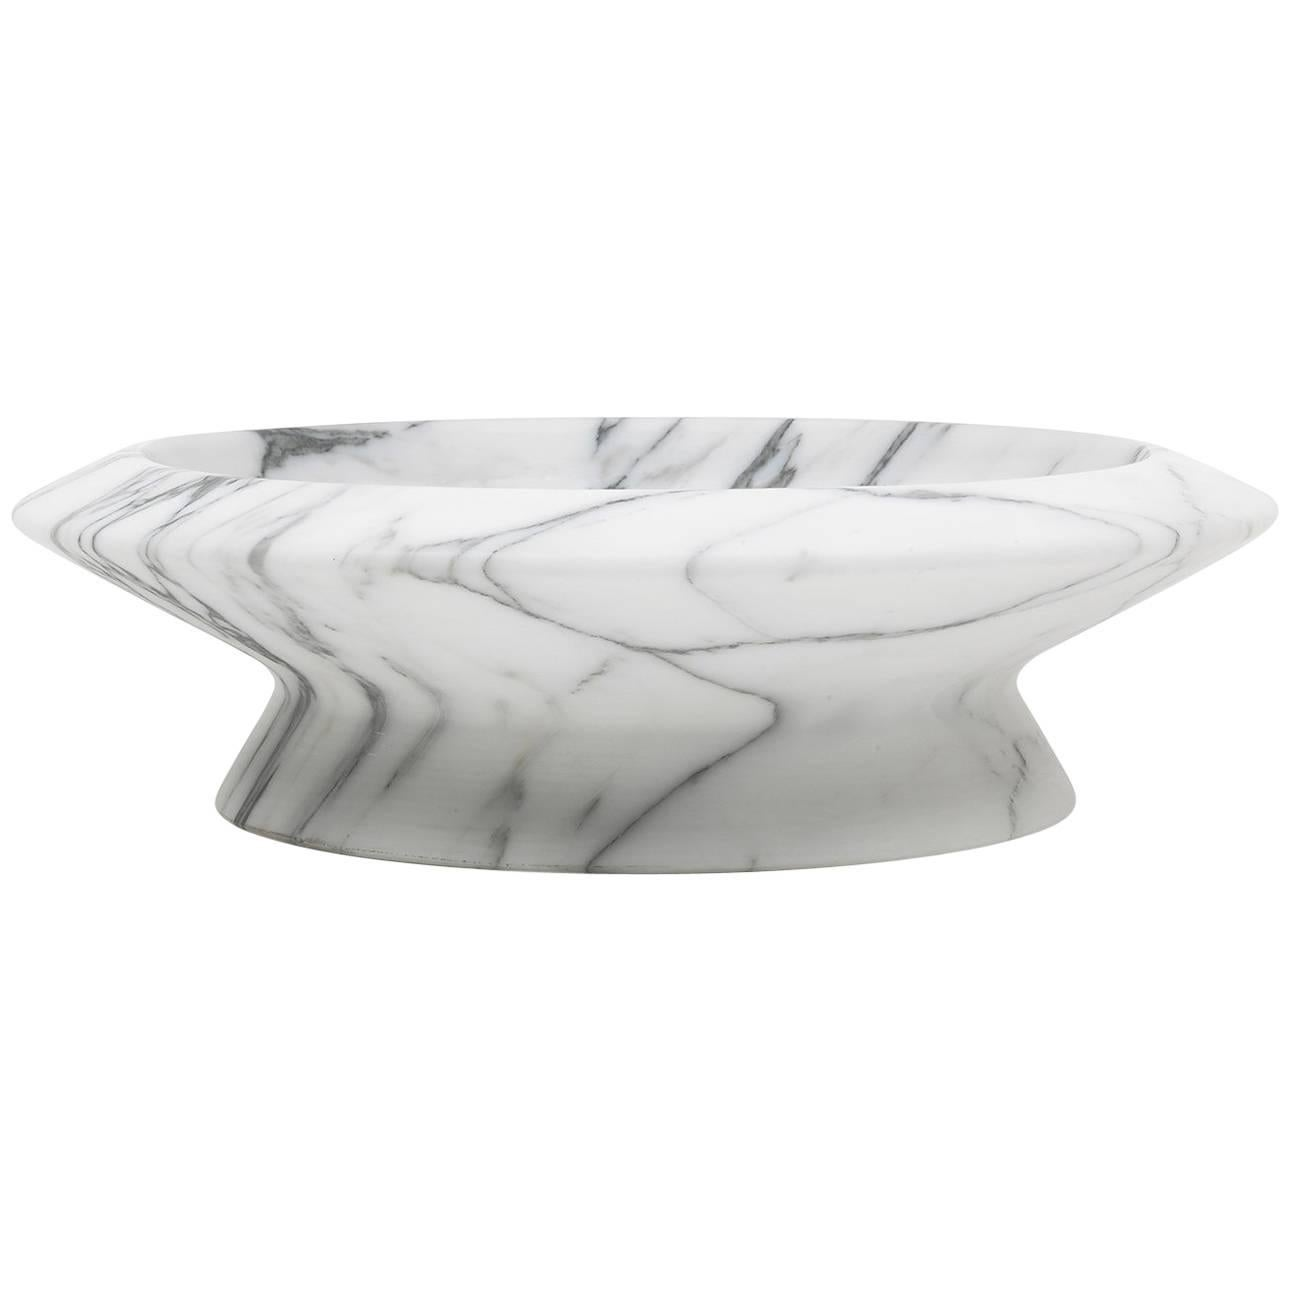 Centrepiece in White Arabescato Marble by Ivan Colominas, Italy